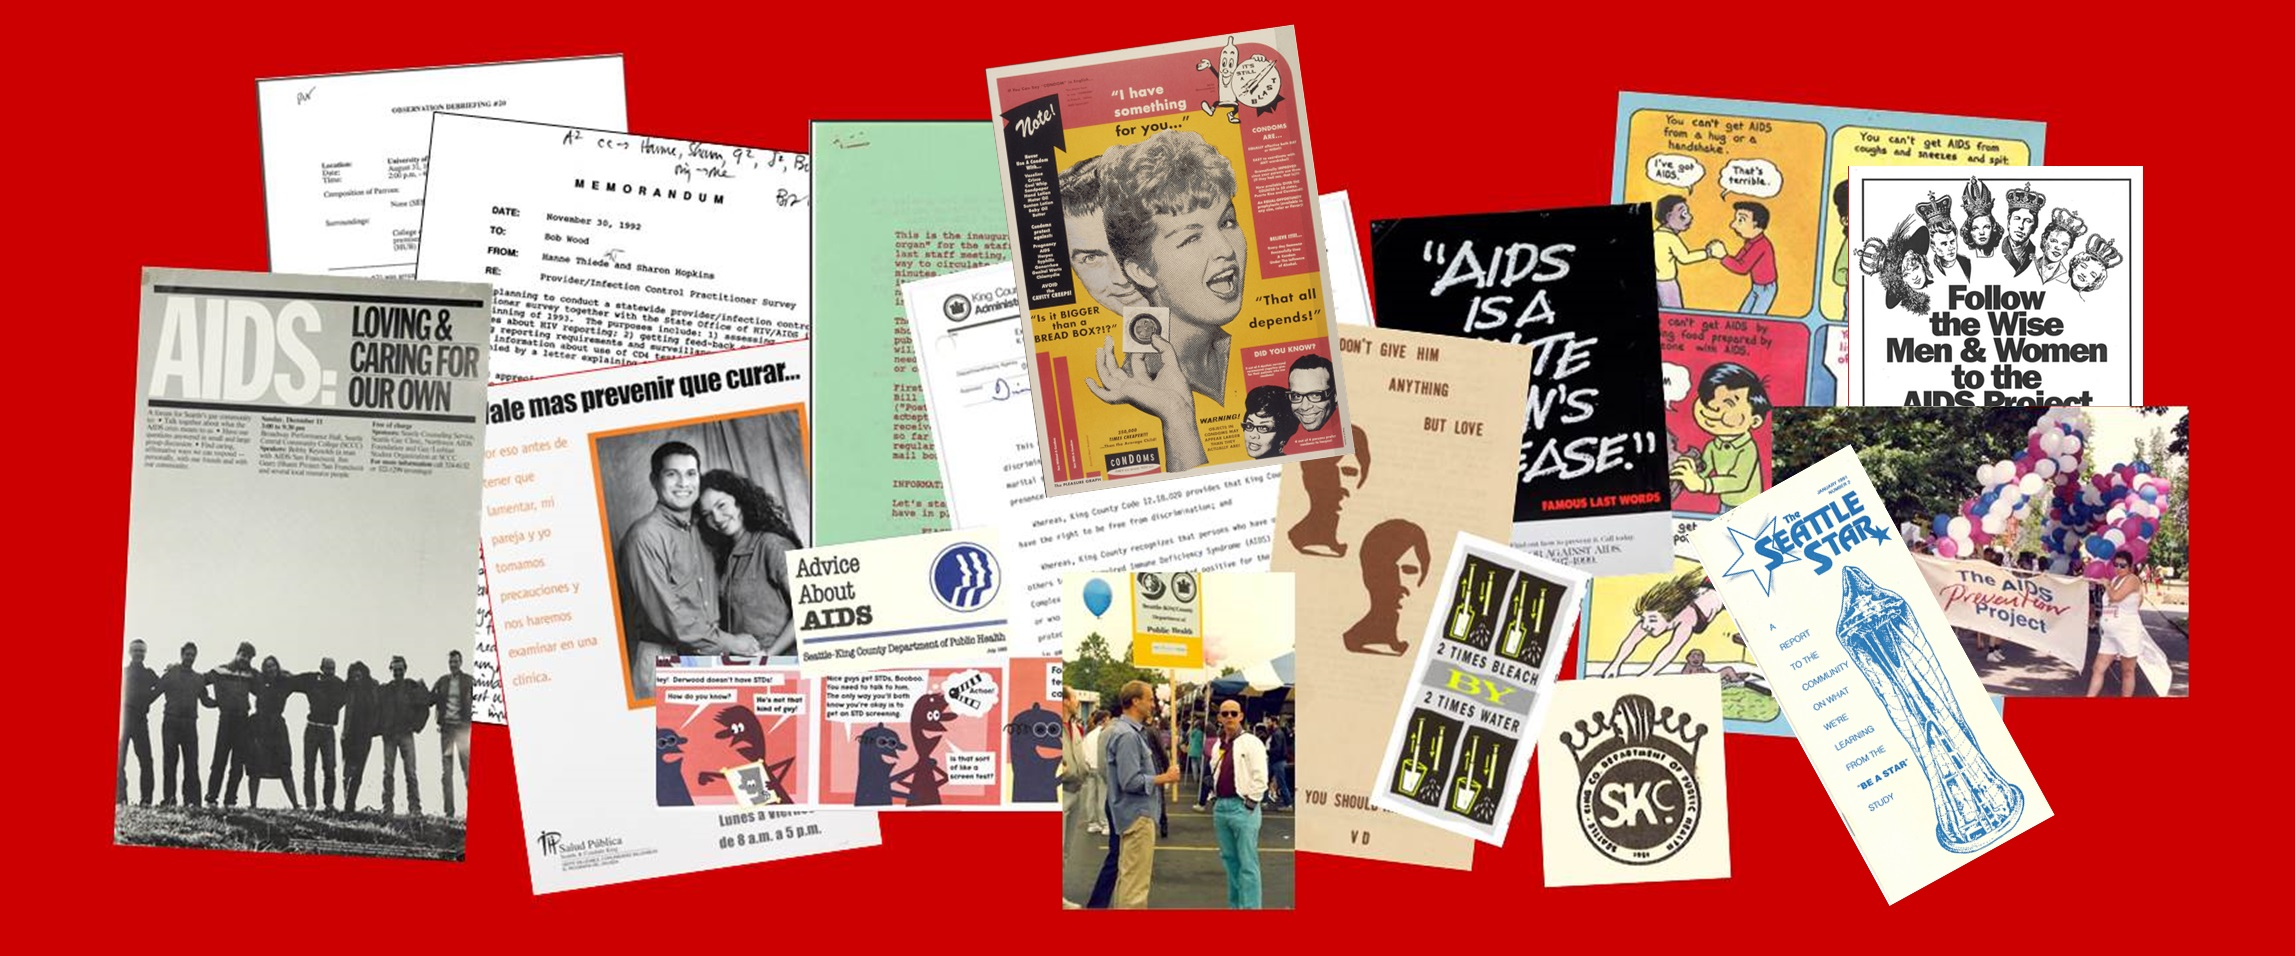 Responding to AIDS exhibit banner